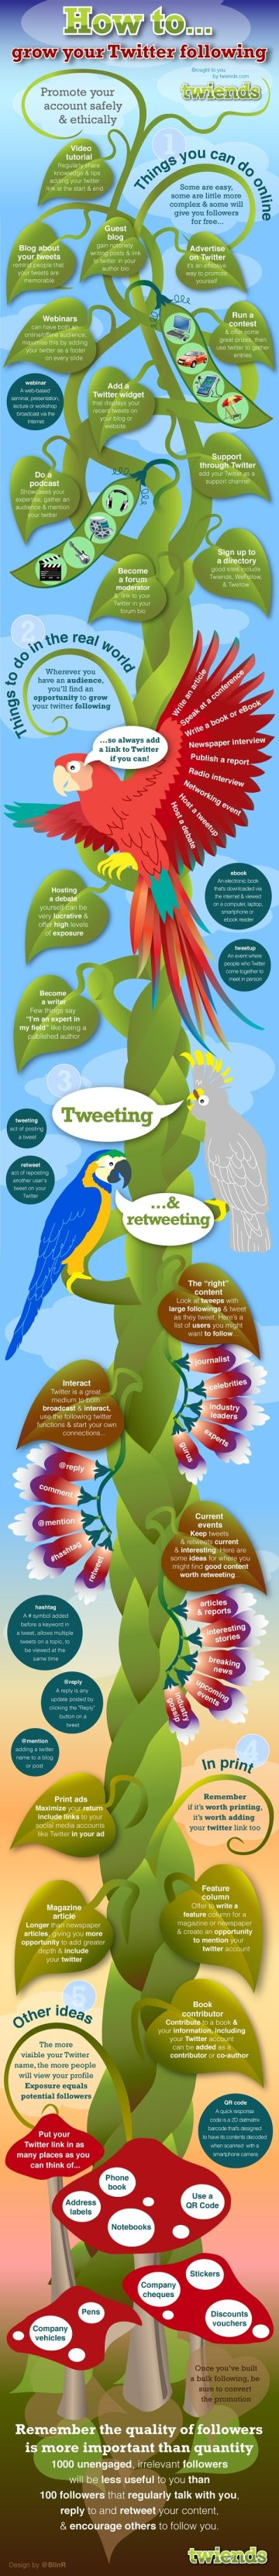 Grow your Twitter following infographic